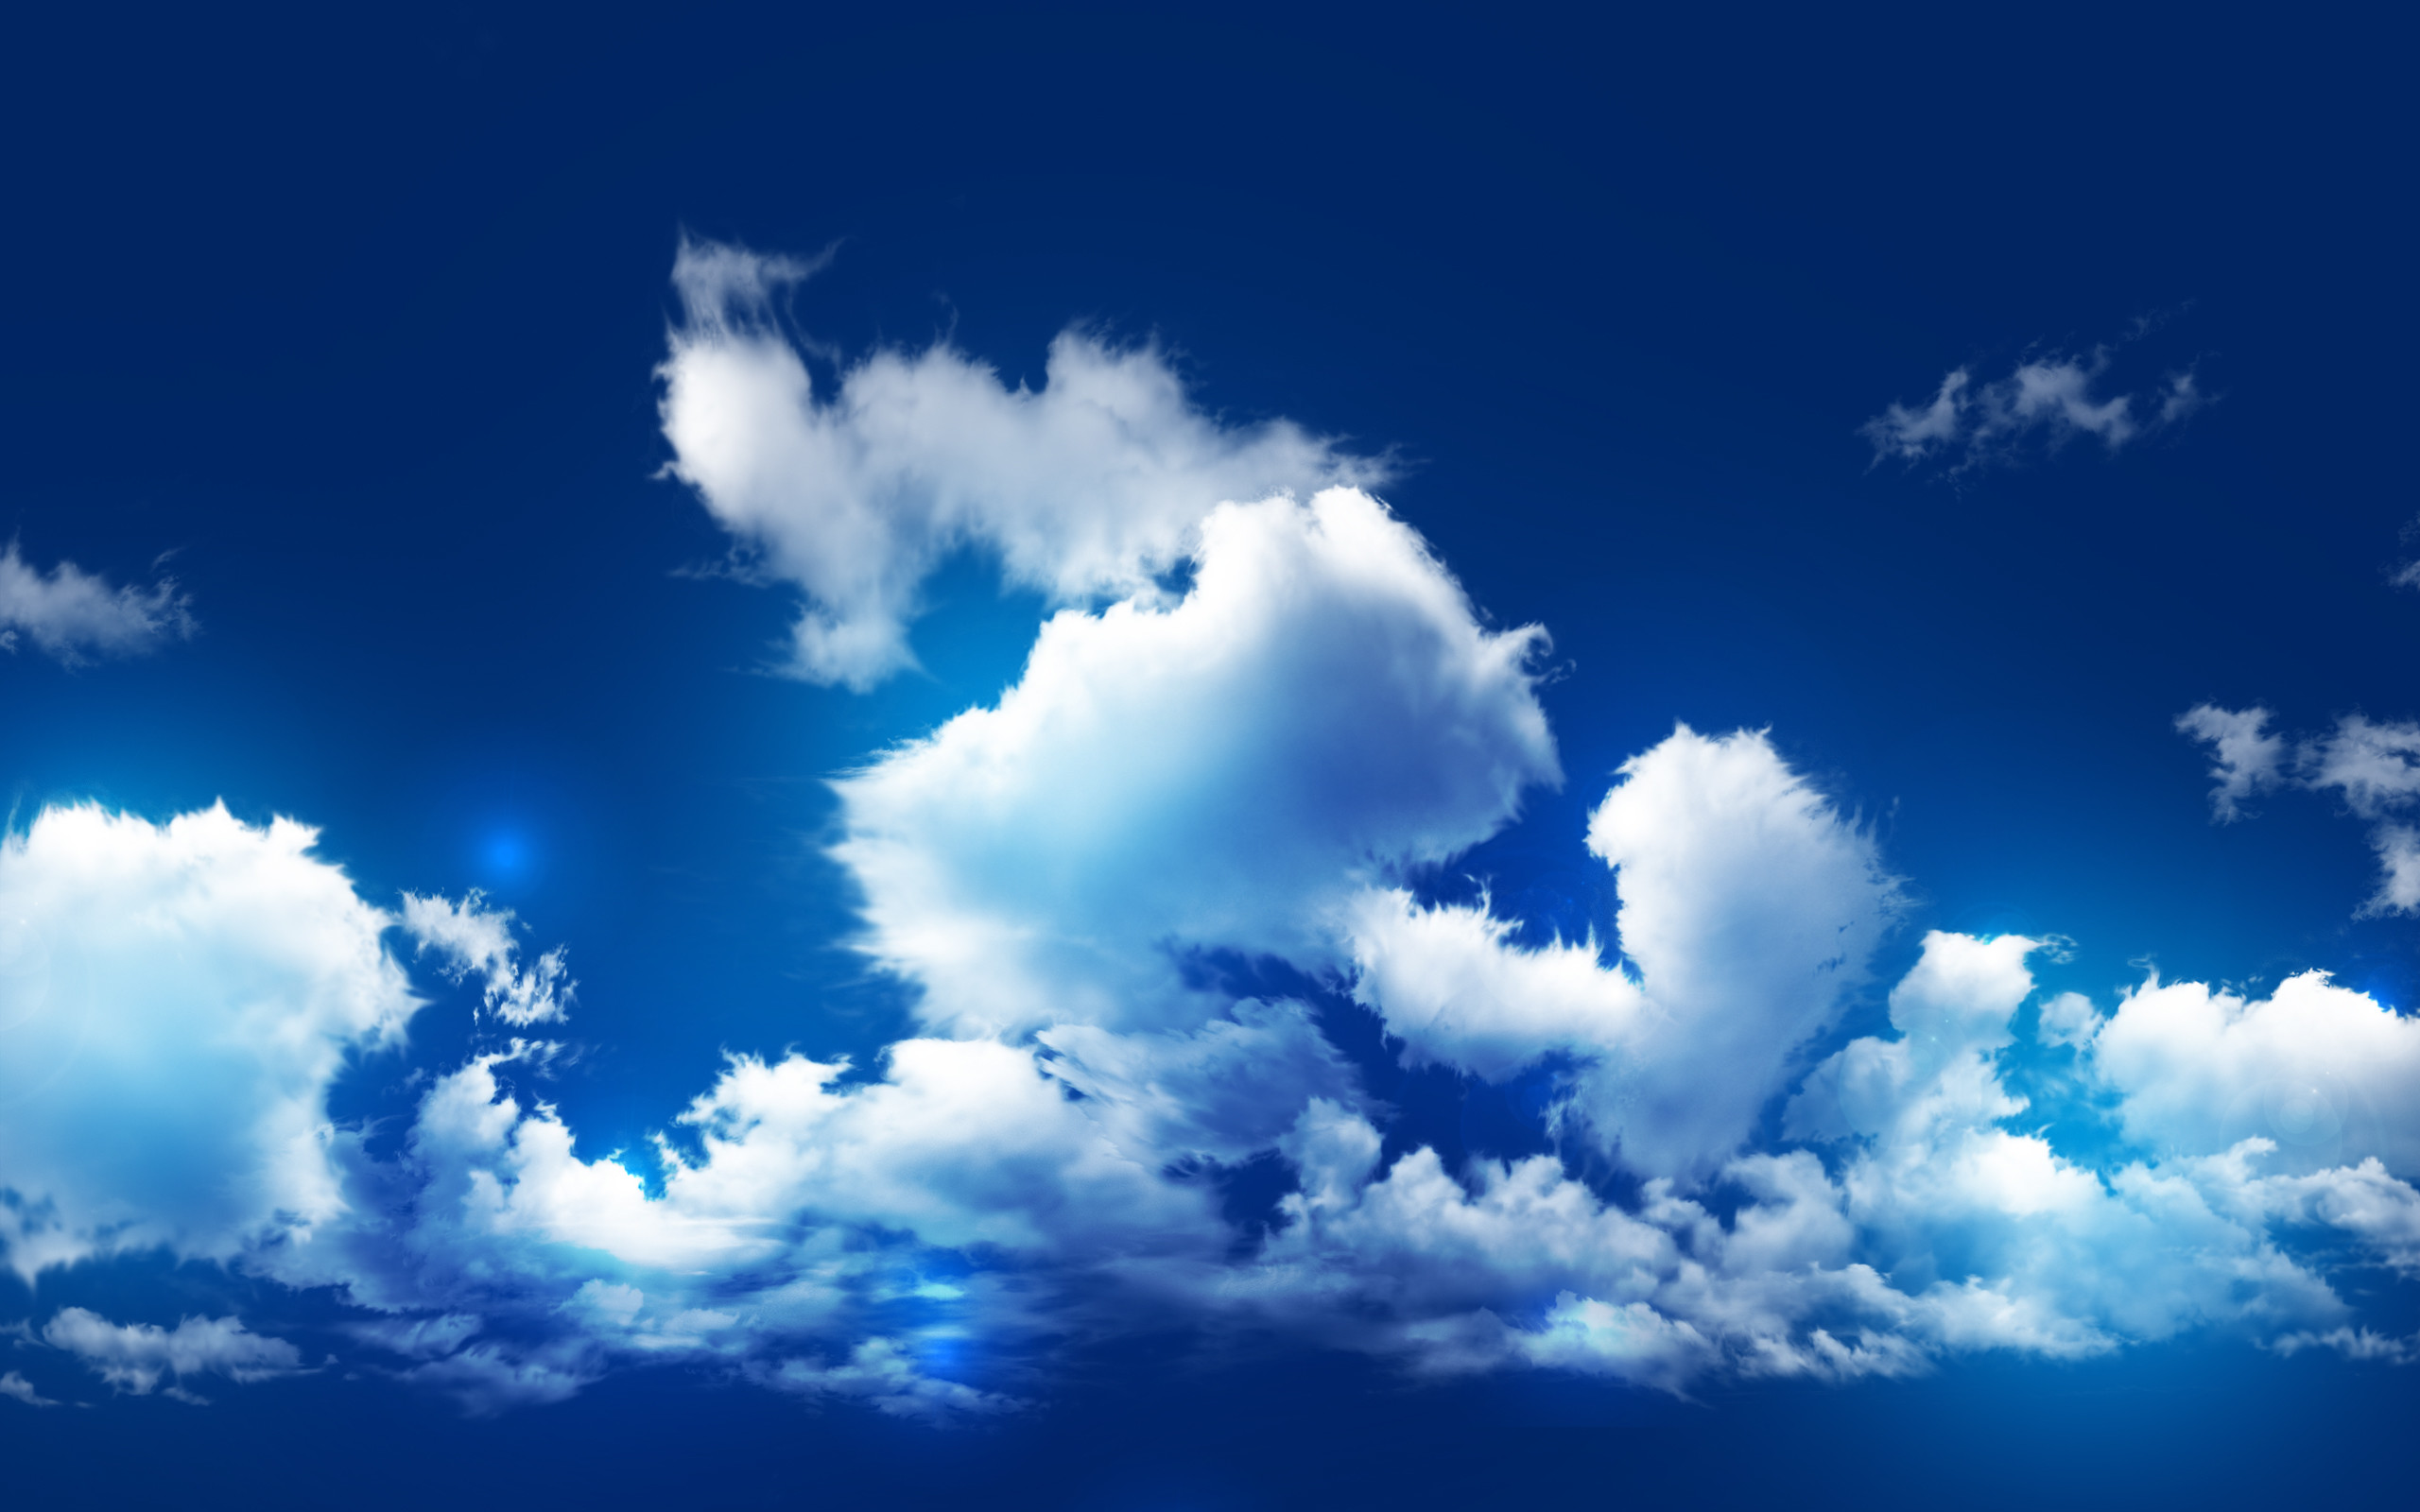 Cloudy Sky Wallpaper (66+ images)